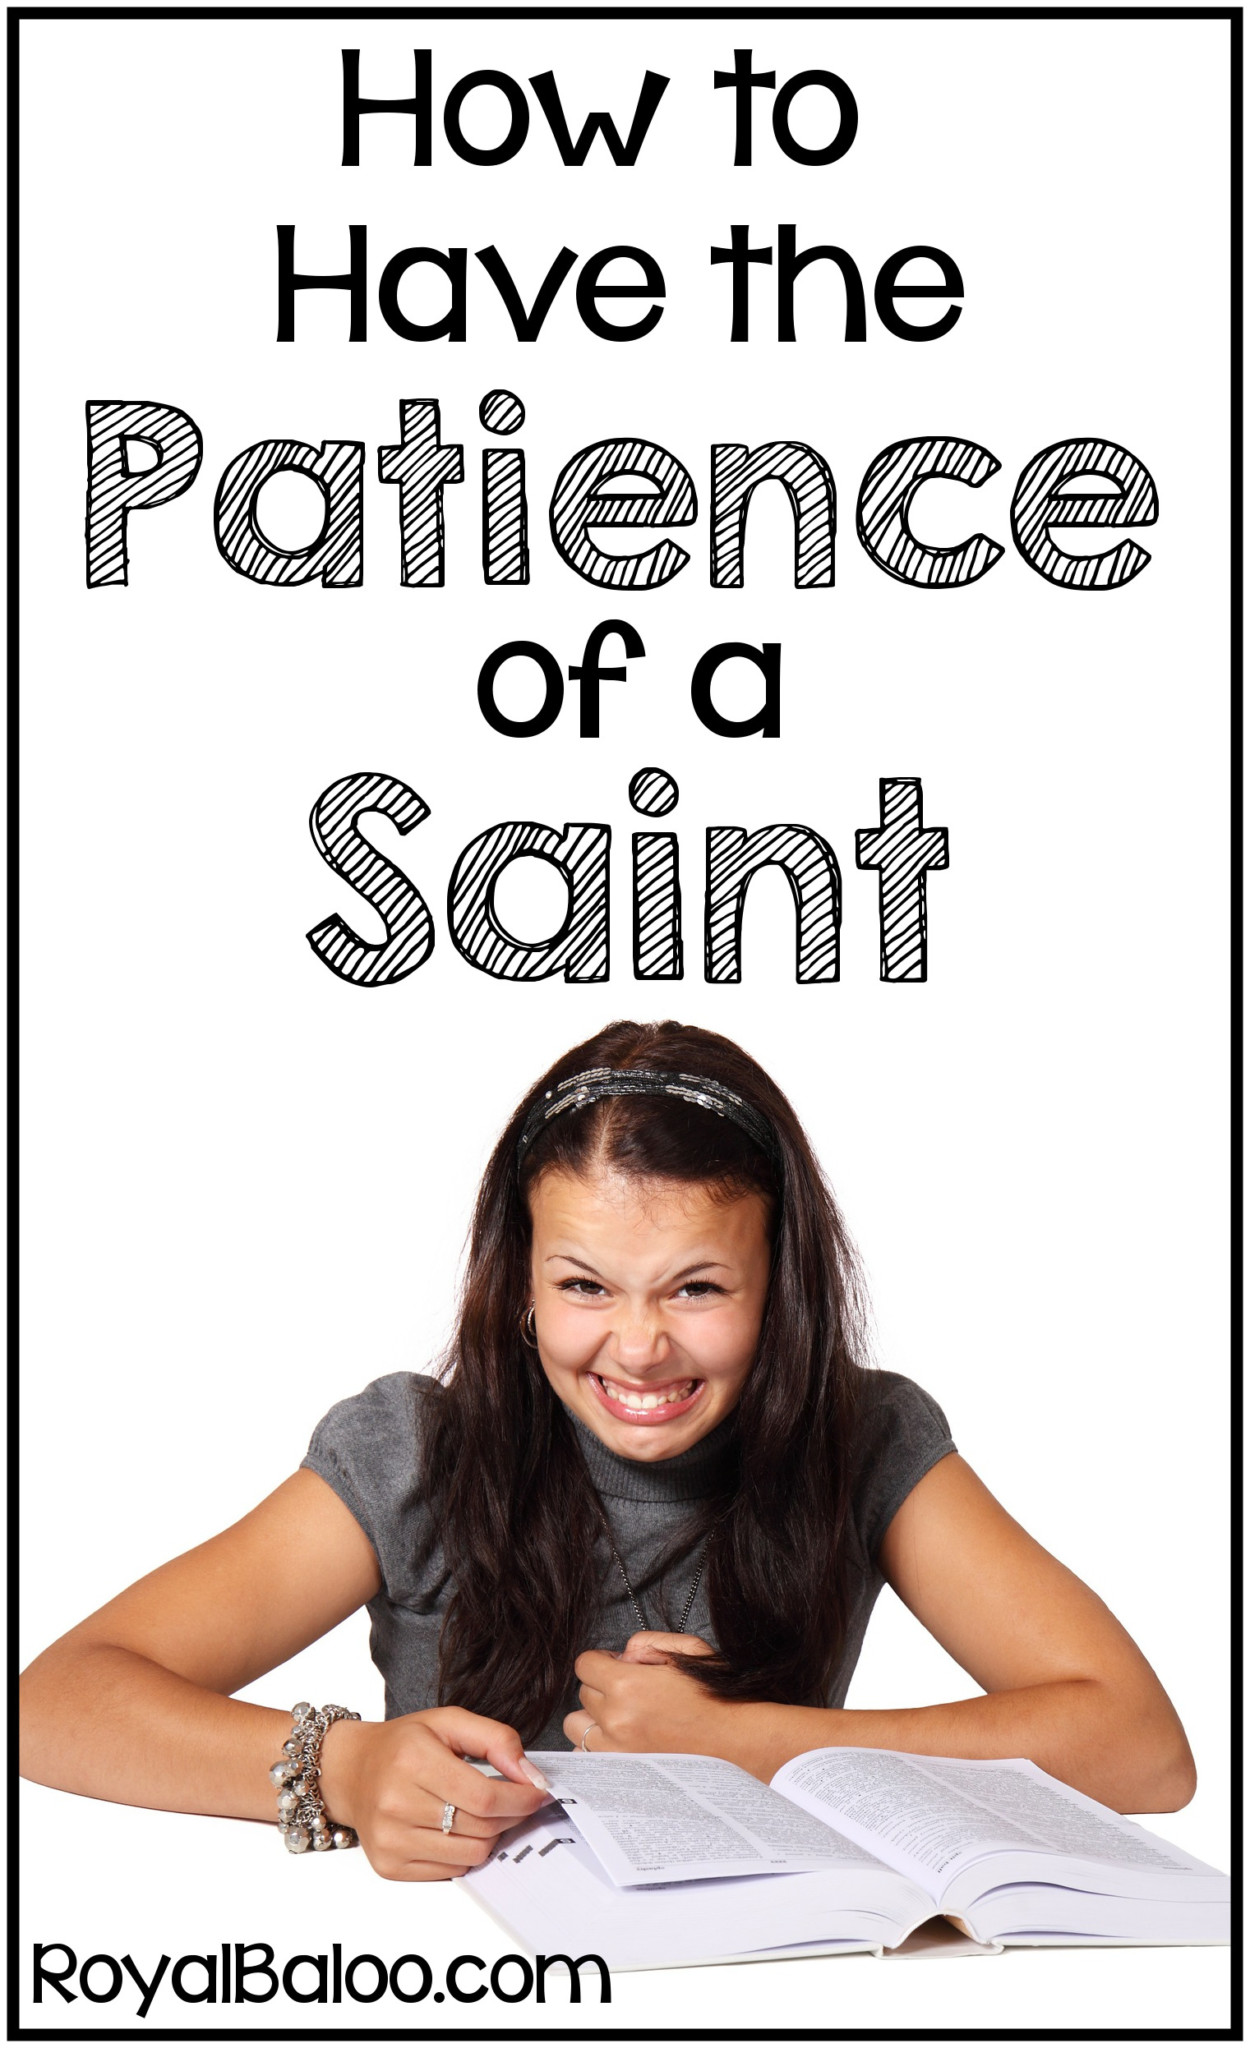 How to Have the Patience of a Saint